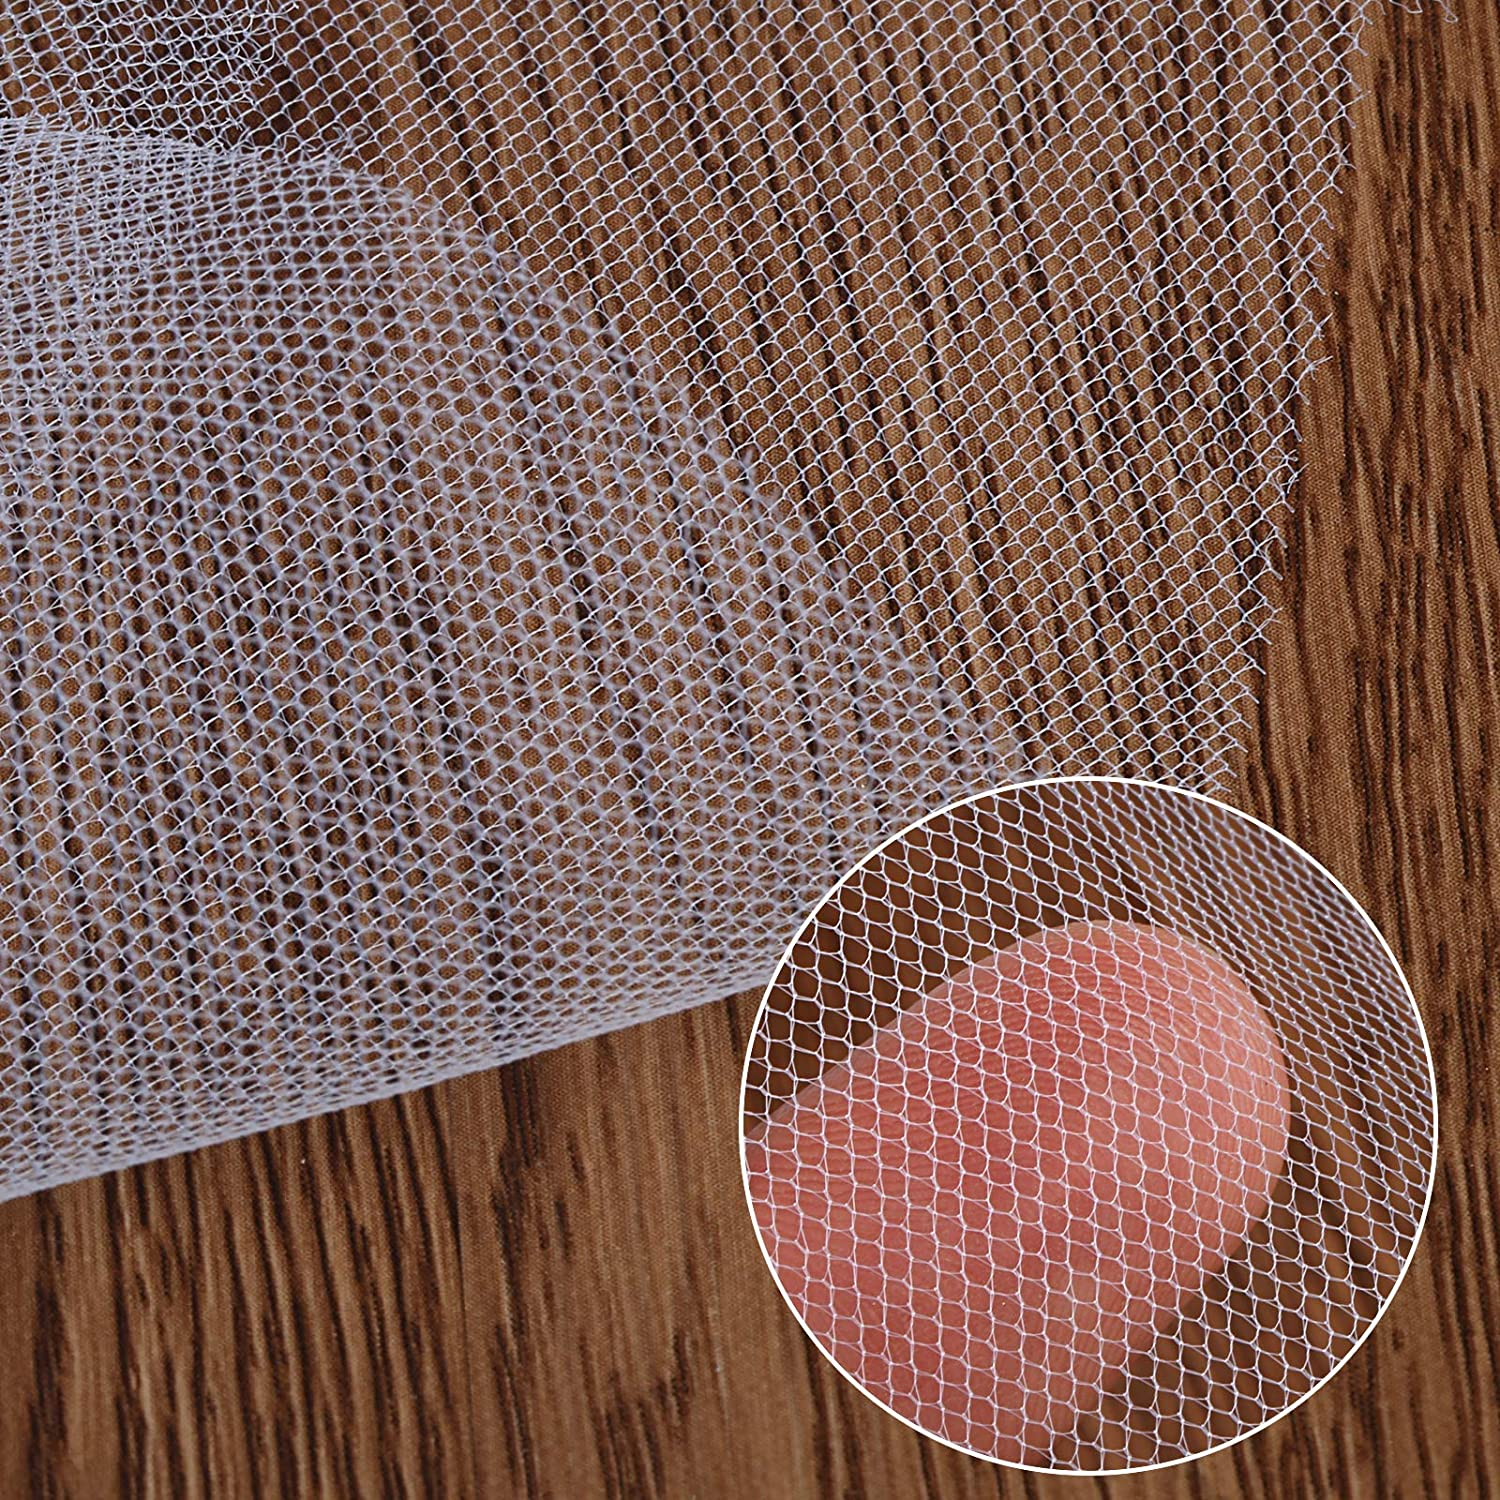 Birthday Wedding Party Fabric Spool Tulle for Baby Shower Naler 100 Yards Tulle Roll Festival Favor Decoration DIY Craft